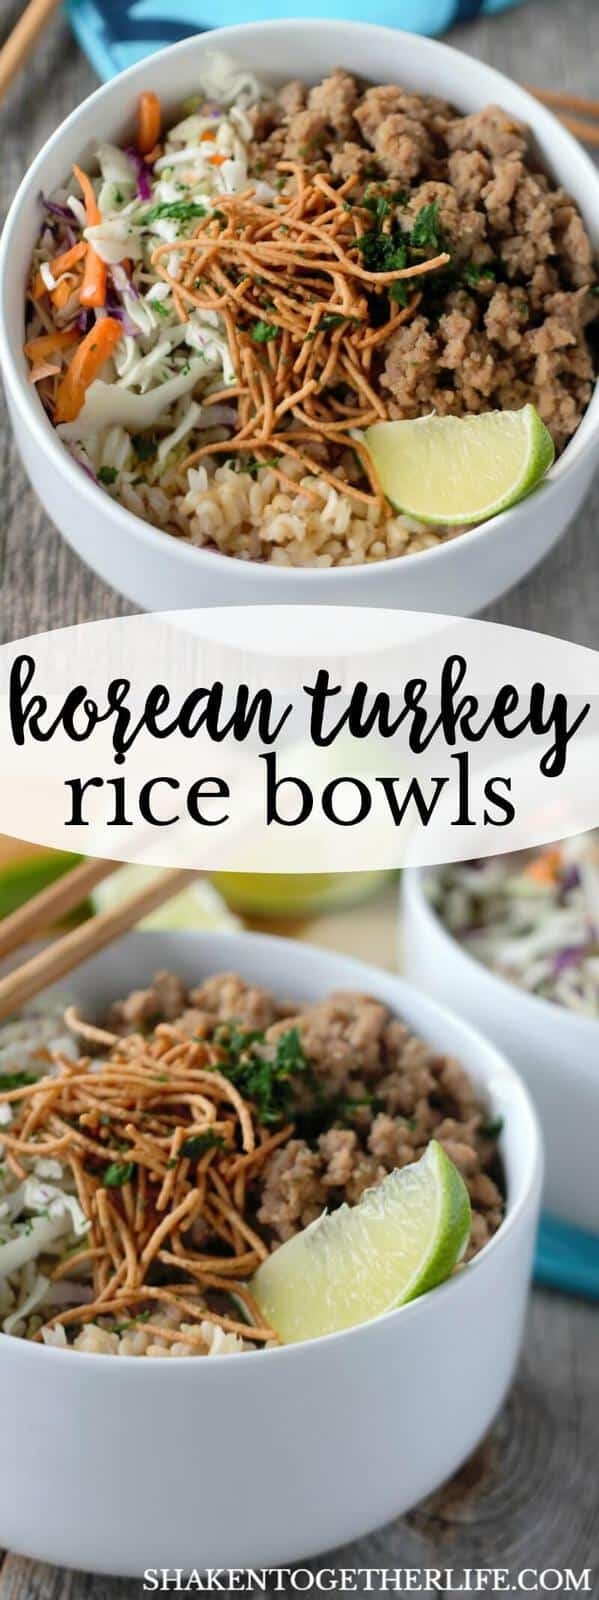 My family can't get enough of these Korean Turkey Rice Bowls! This is a quick and flavorful 30 minute meal!